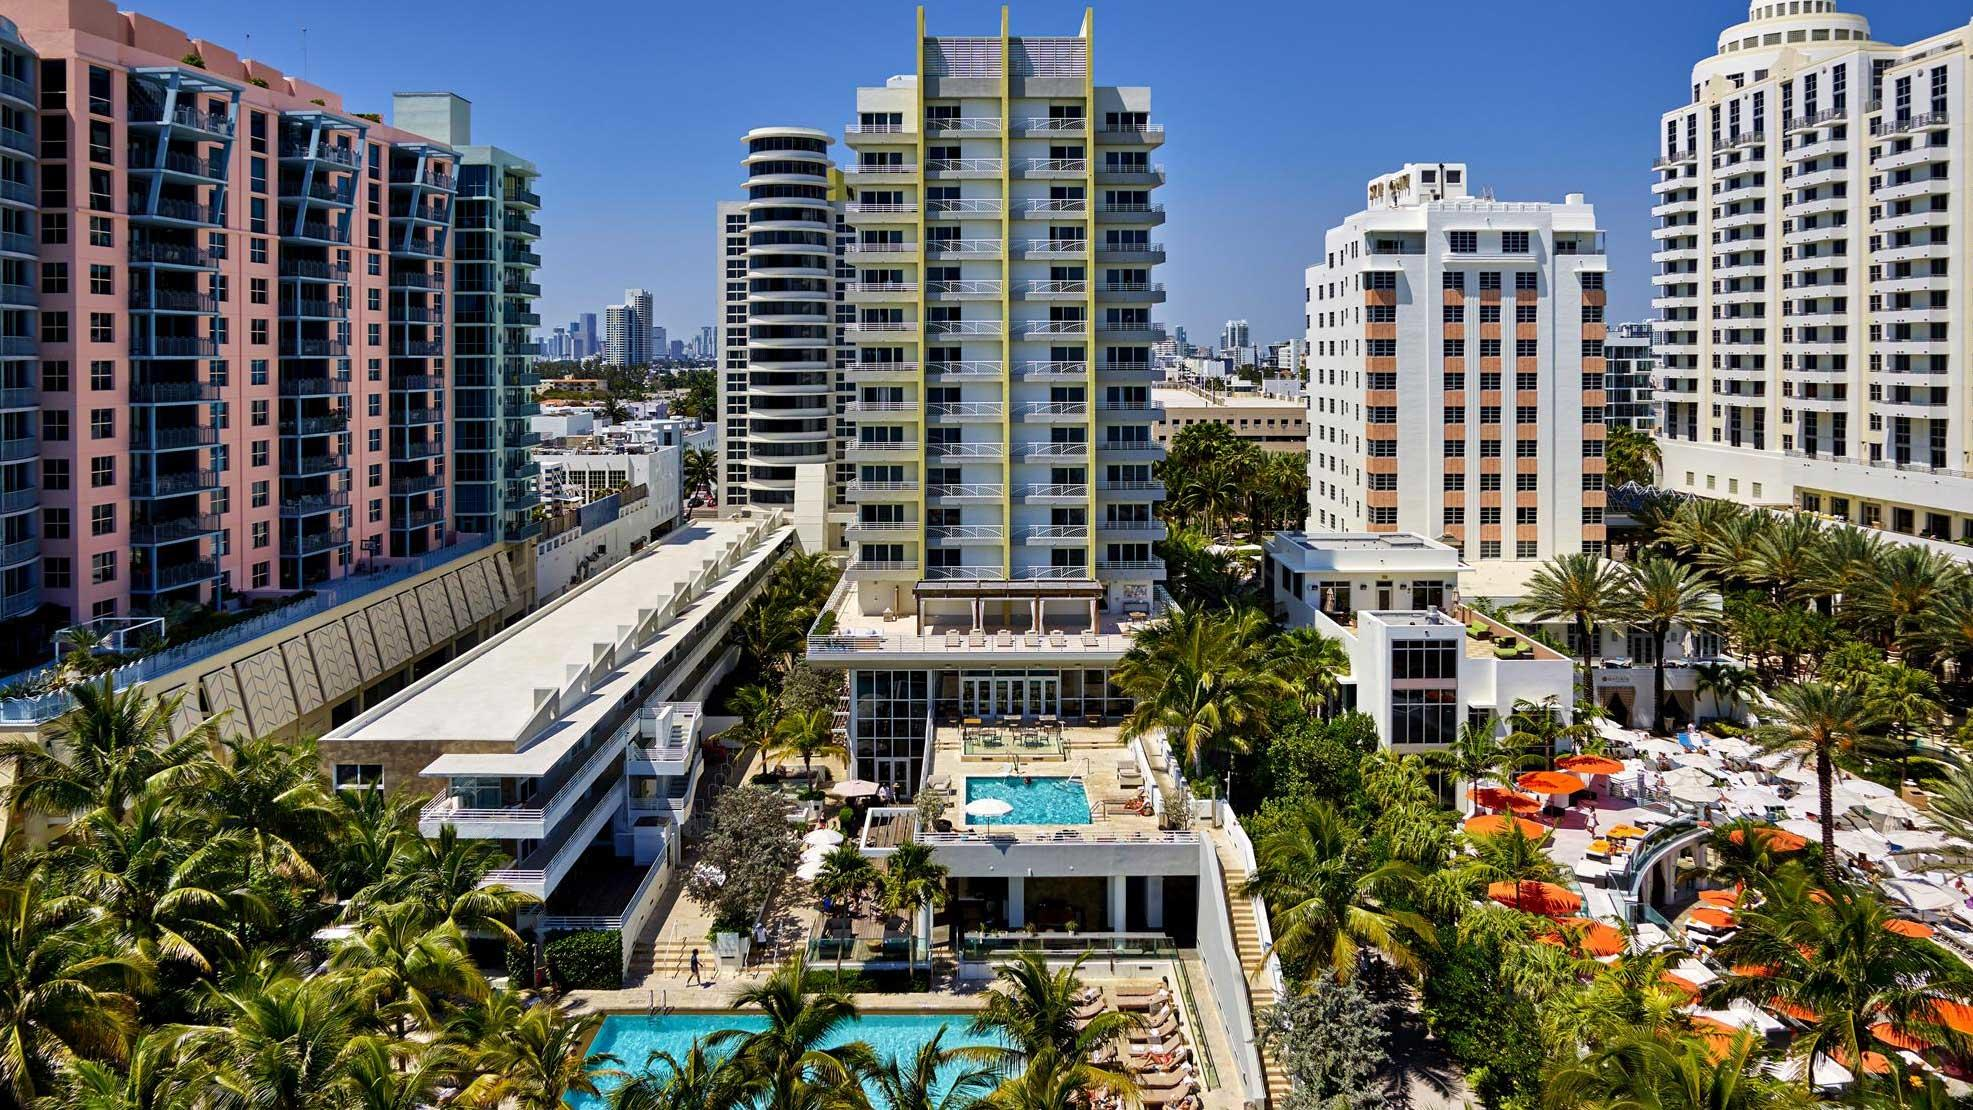 hospitality-royal-palm-hotel-usa-miami-internship-culinary.png